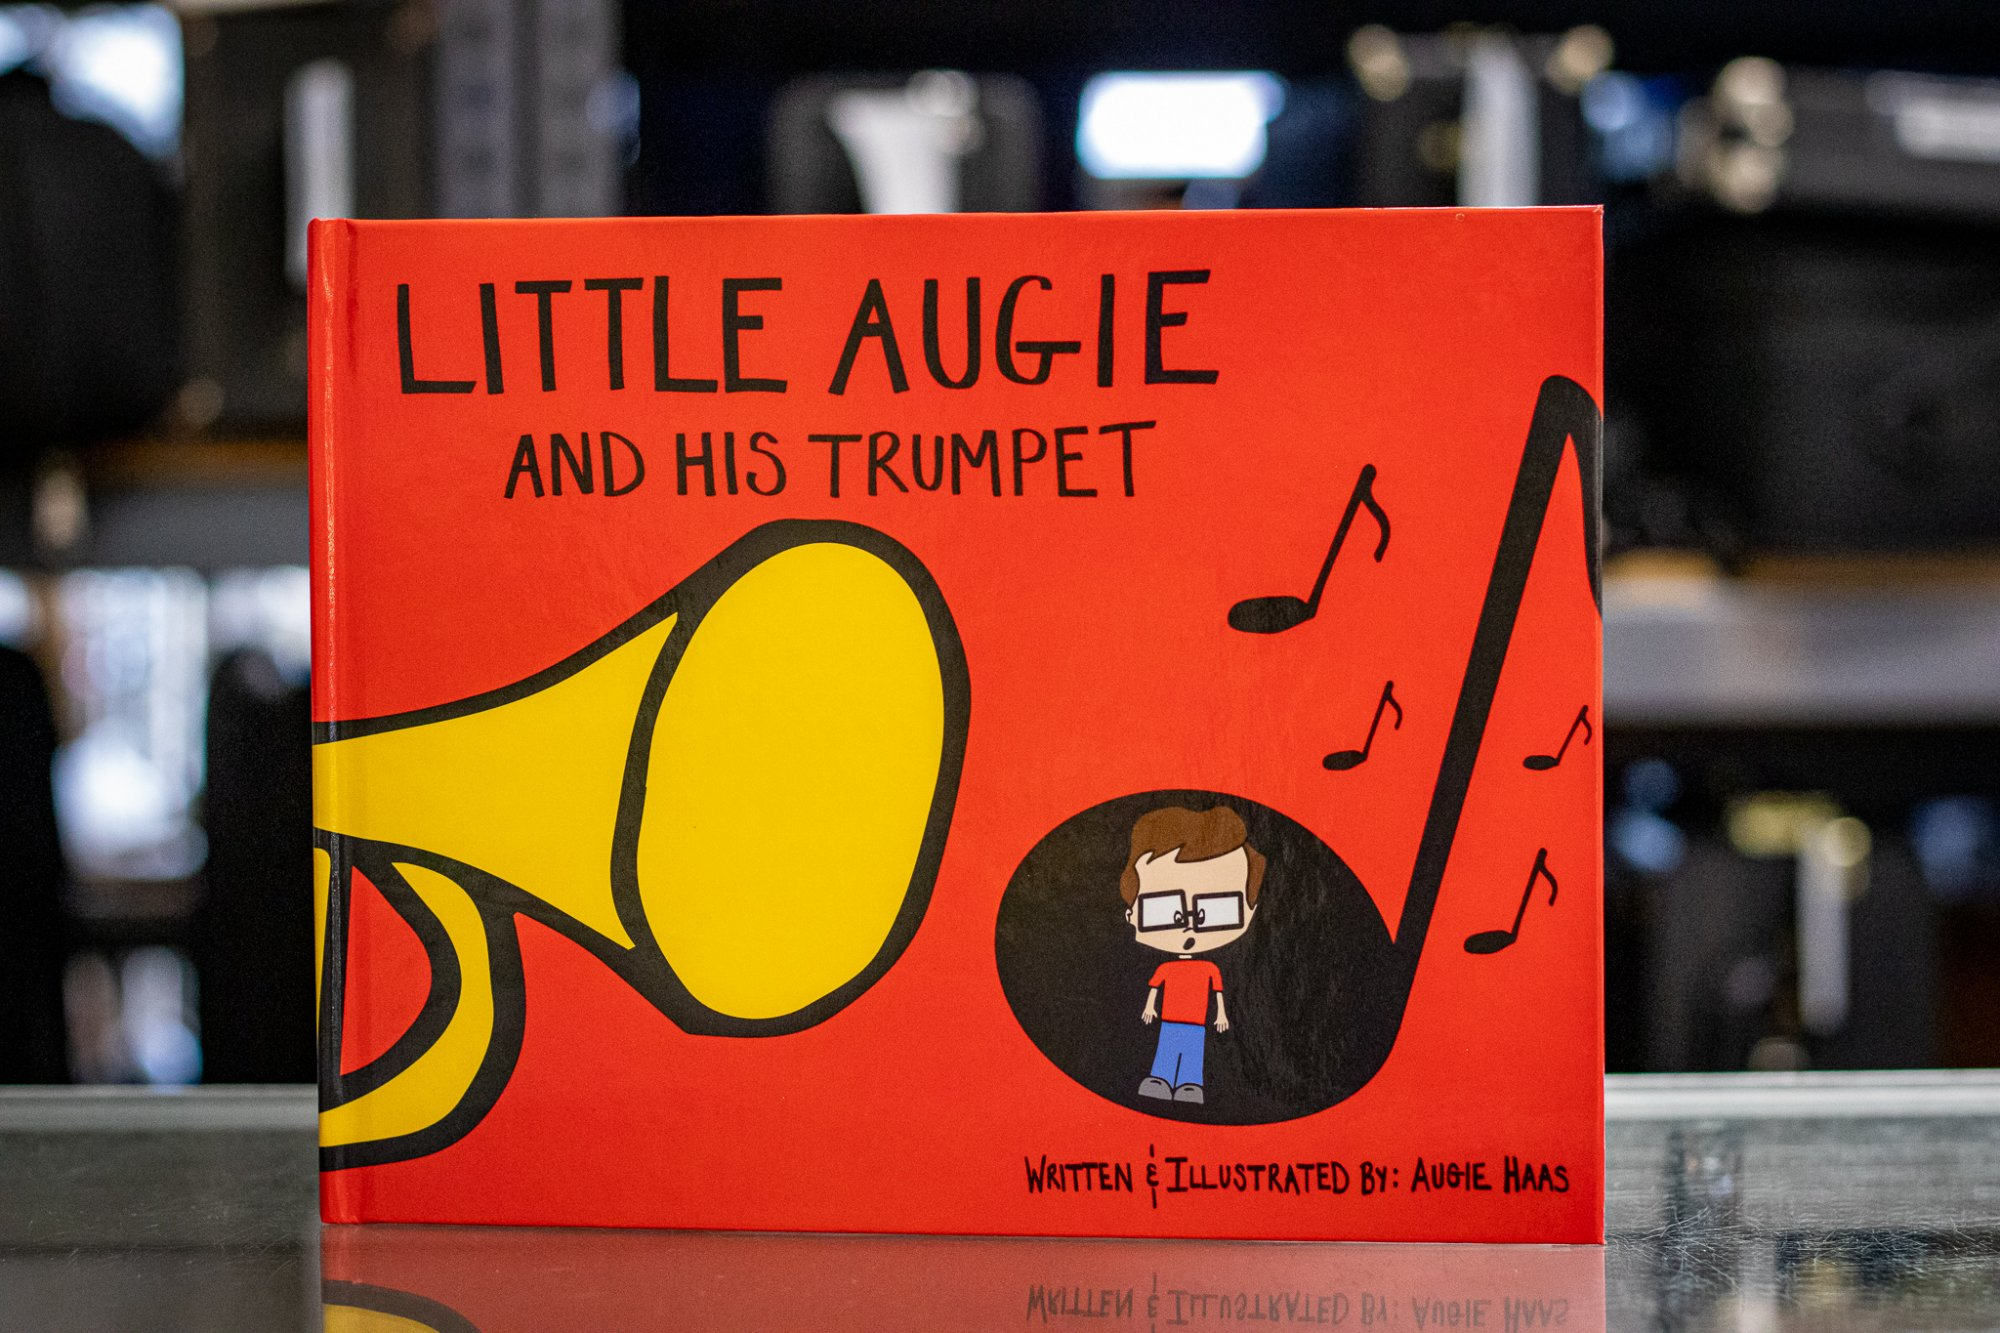 Little Augie and His Trumpet Hardcover by Augie Haas